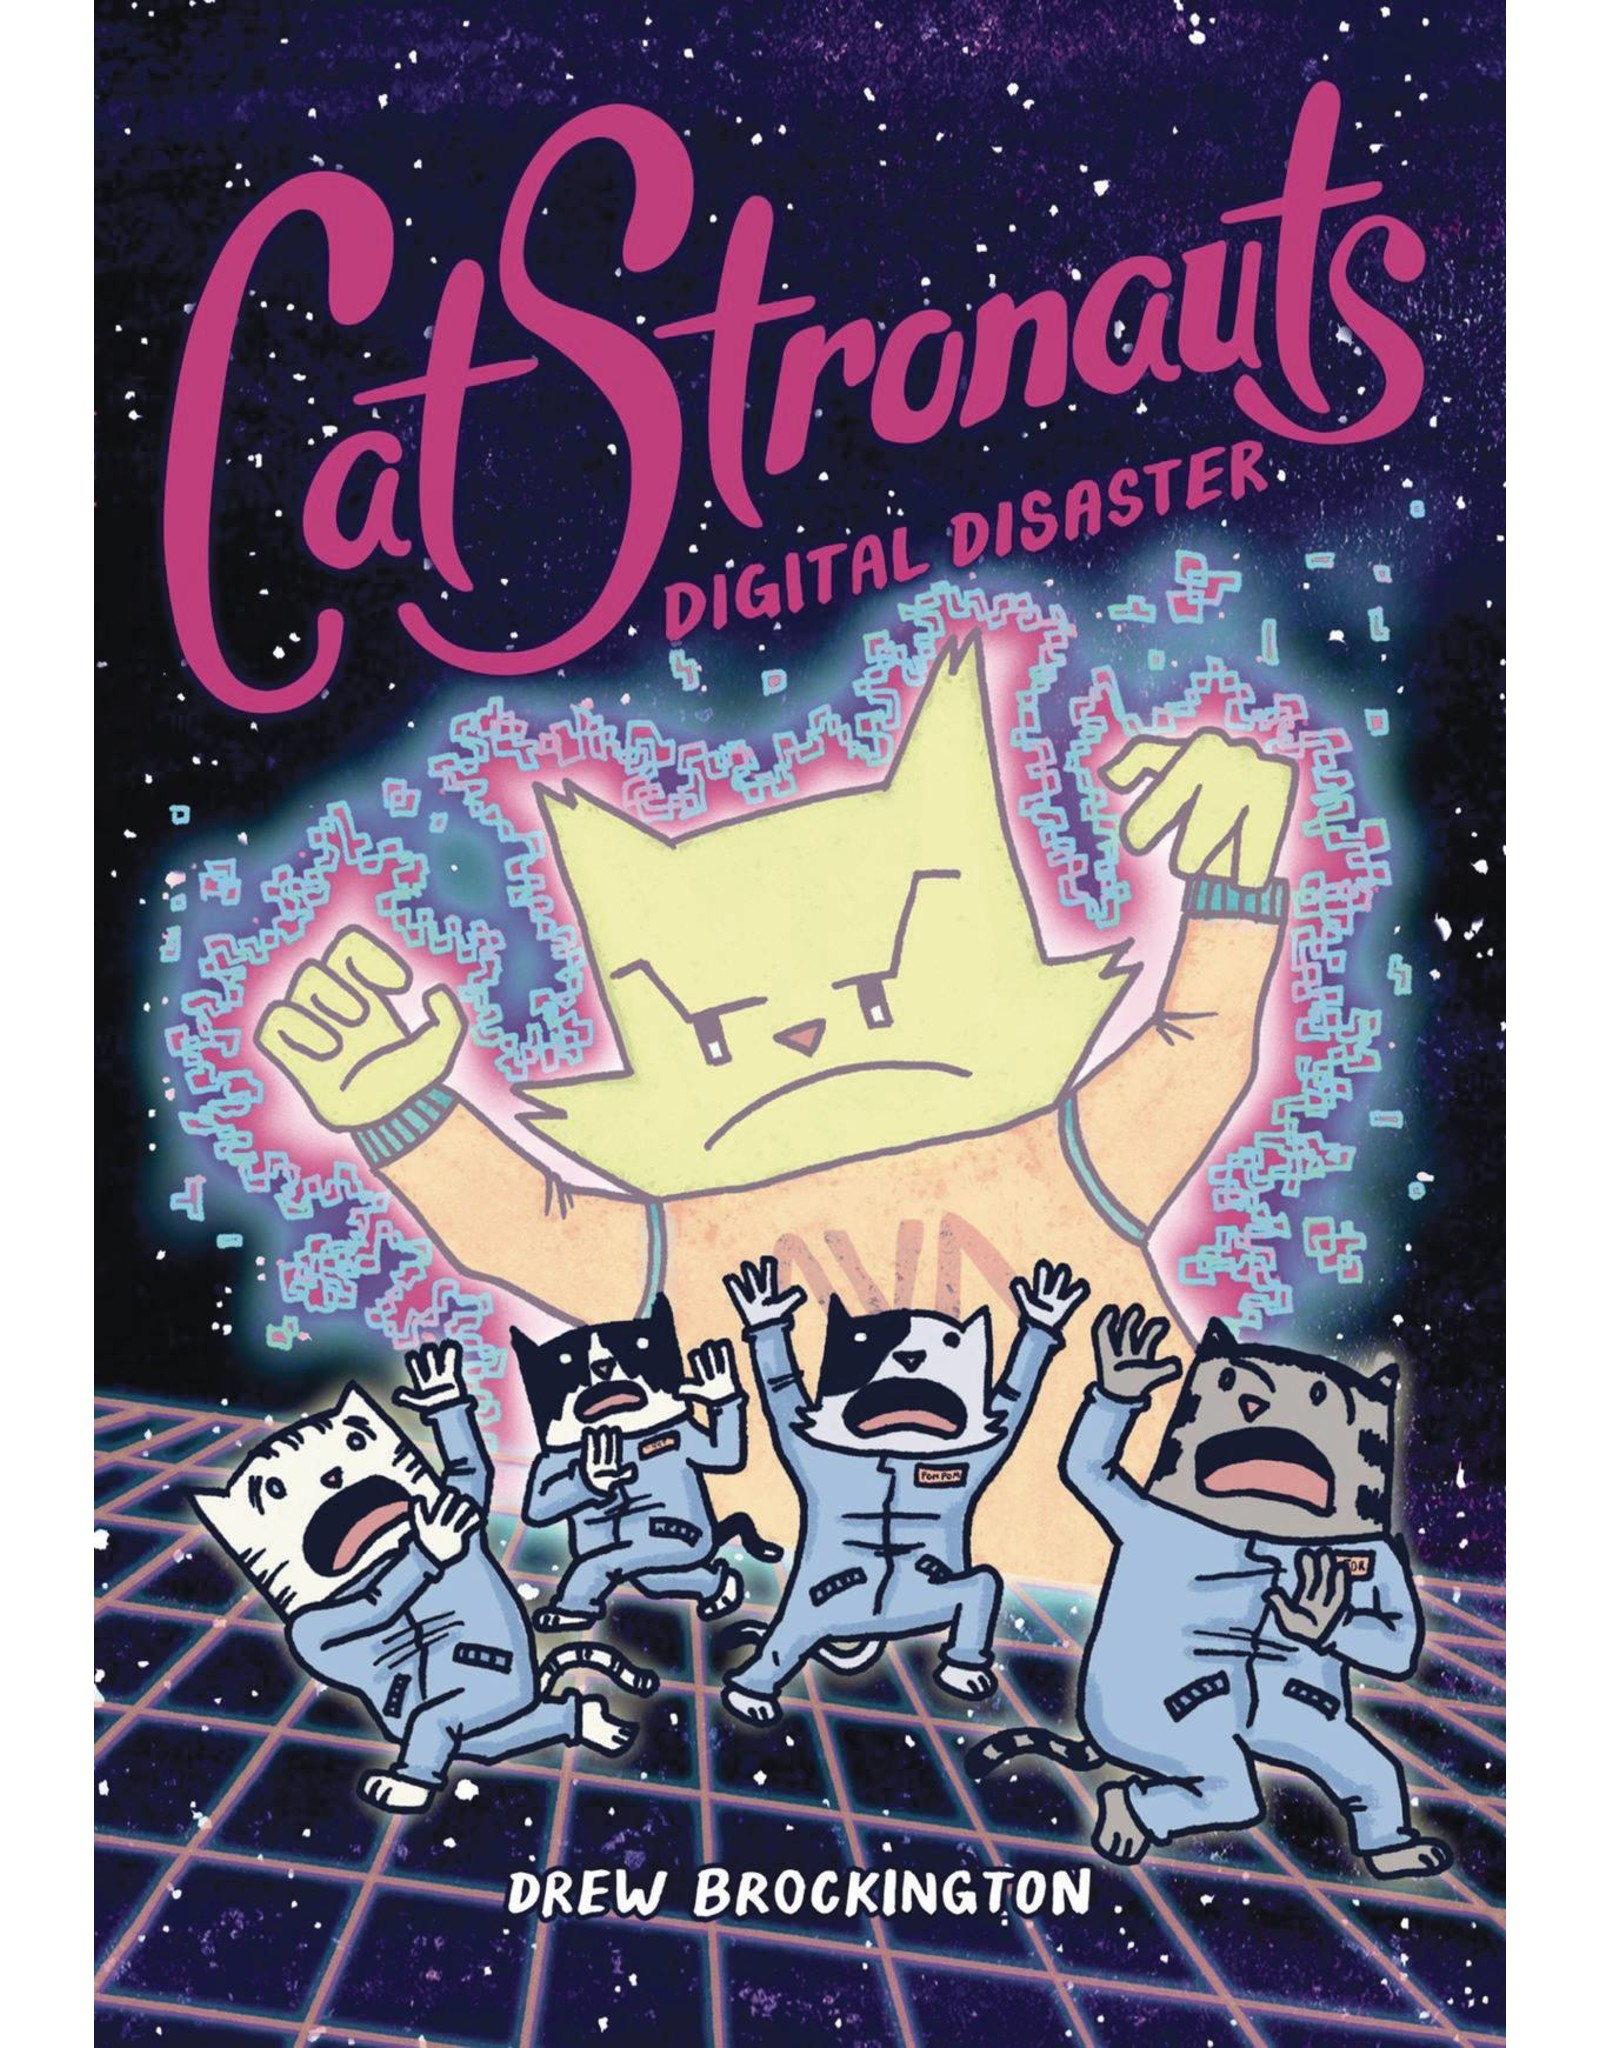 LITTLE BROWN BOOK FOR YOUNG RE CATSTRONAUTS YR GN VOL 06 DIGITAL DISASTER